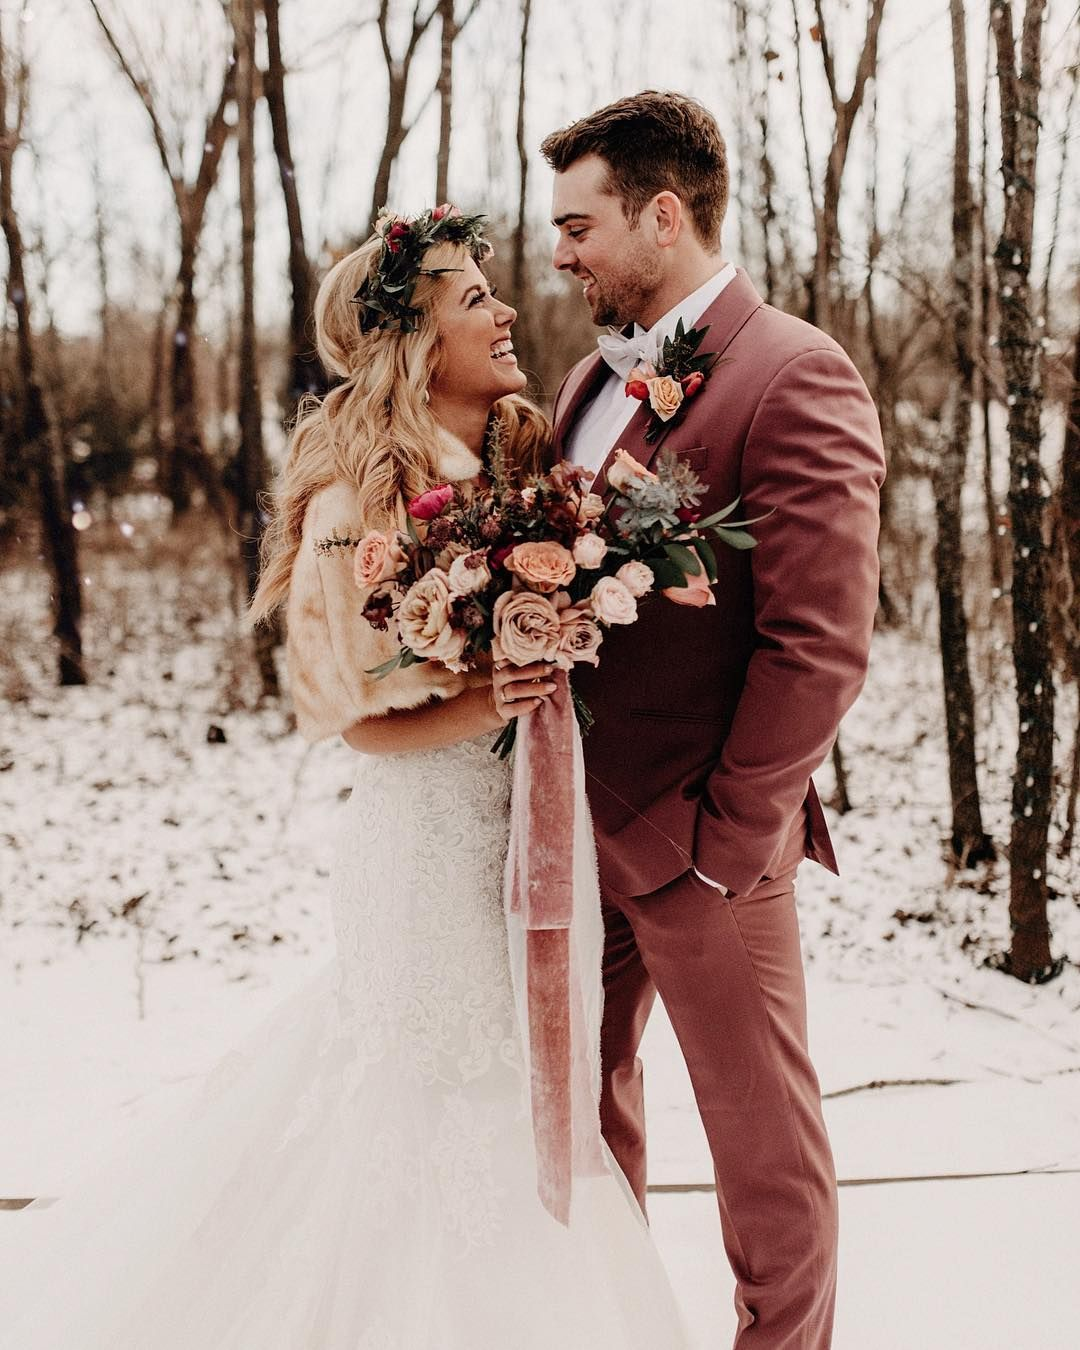 21 Stunning Winter Wedding Photos We Can't Stop Staring At